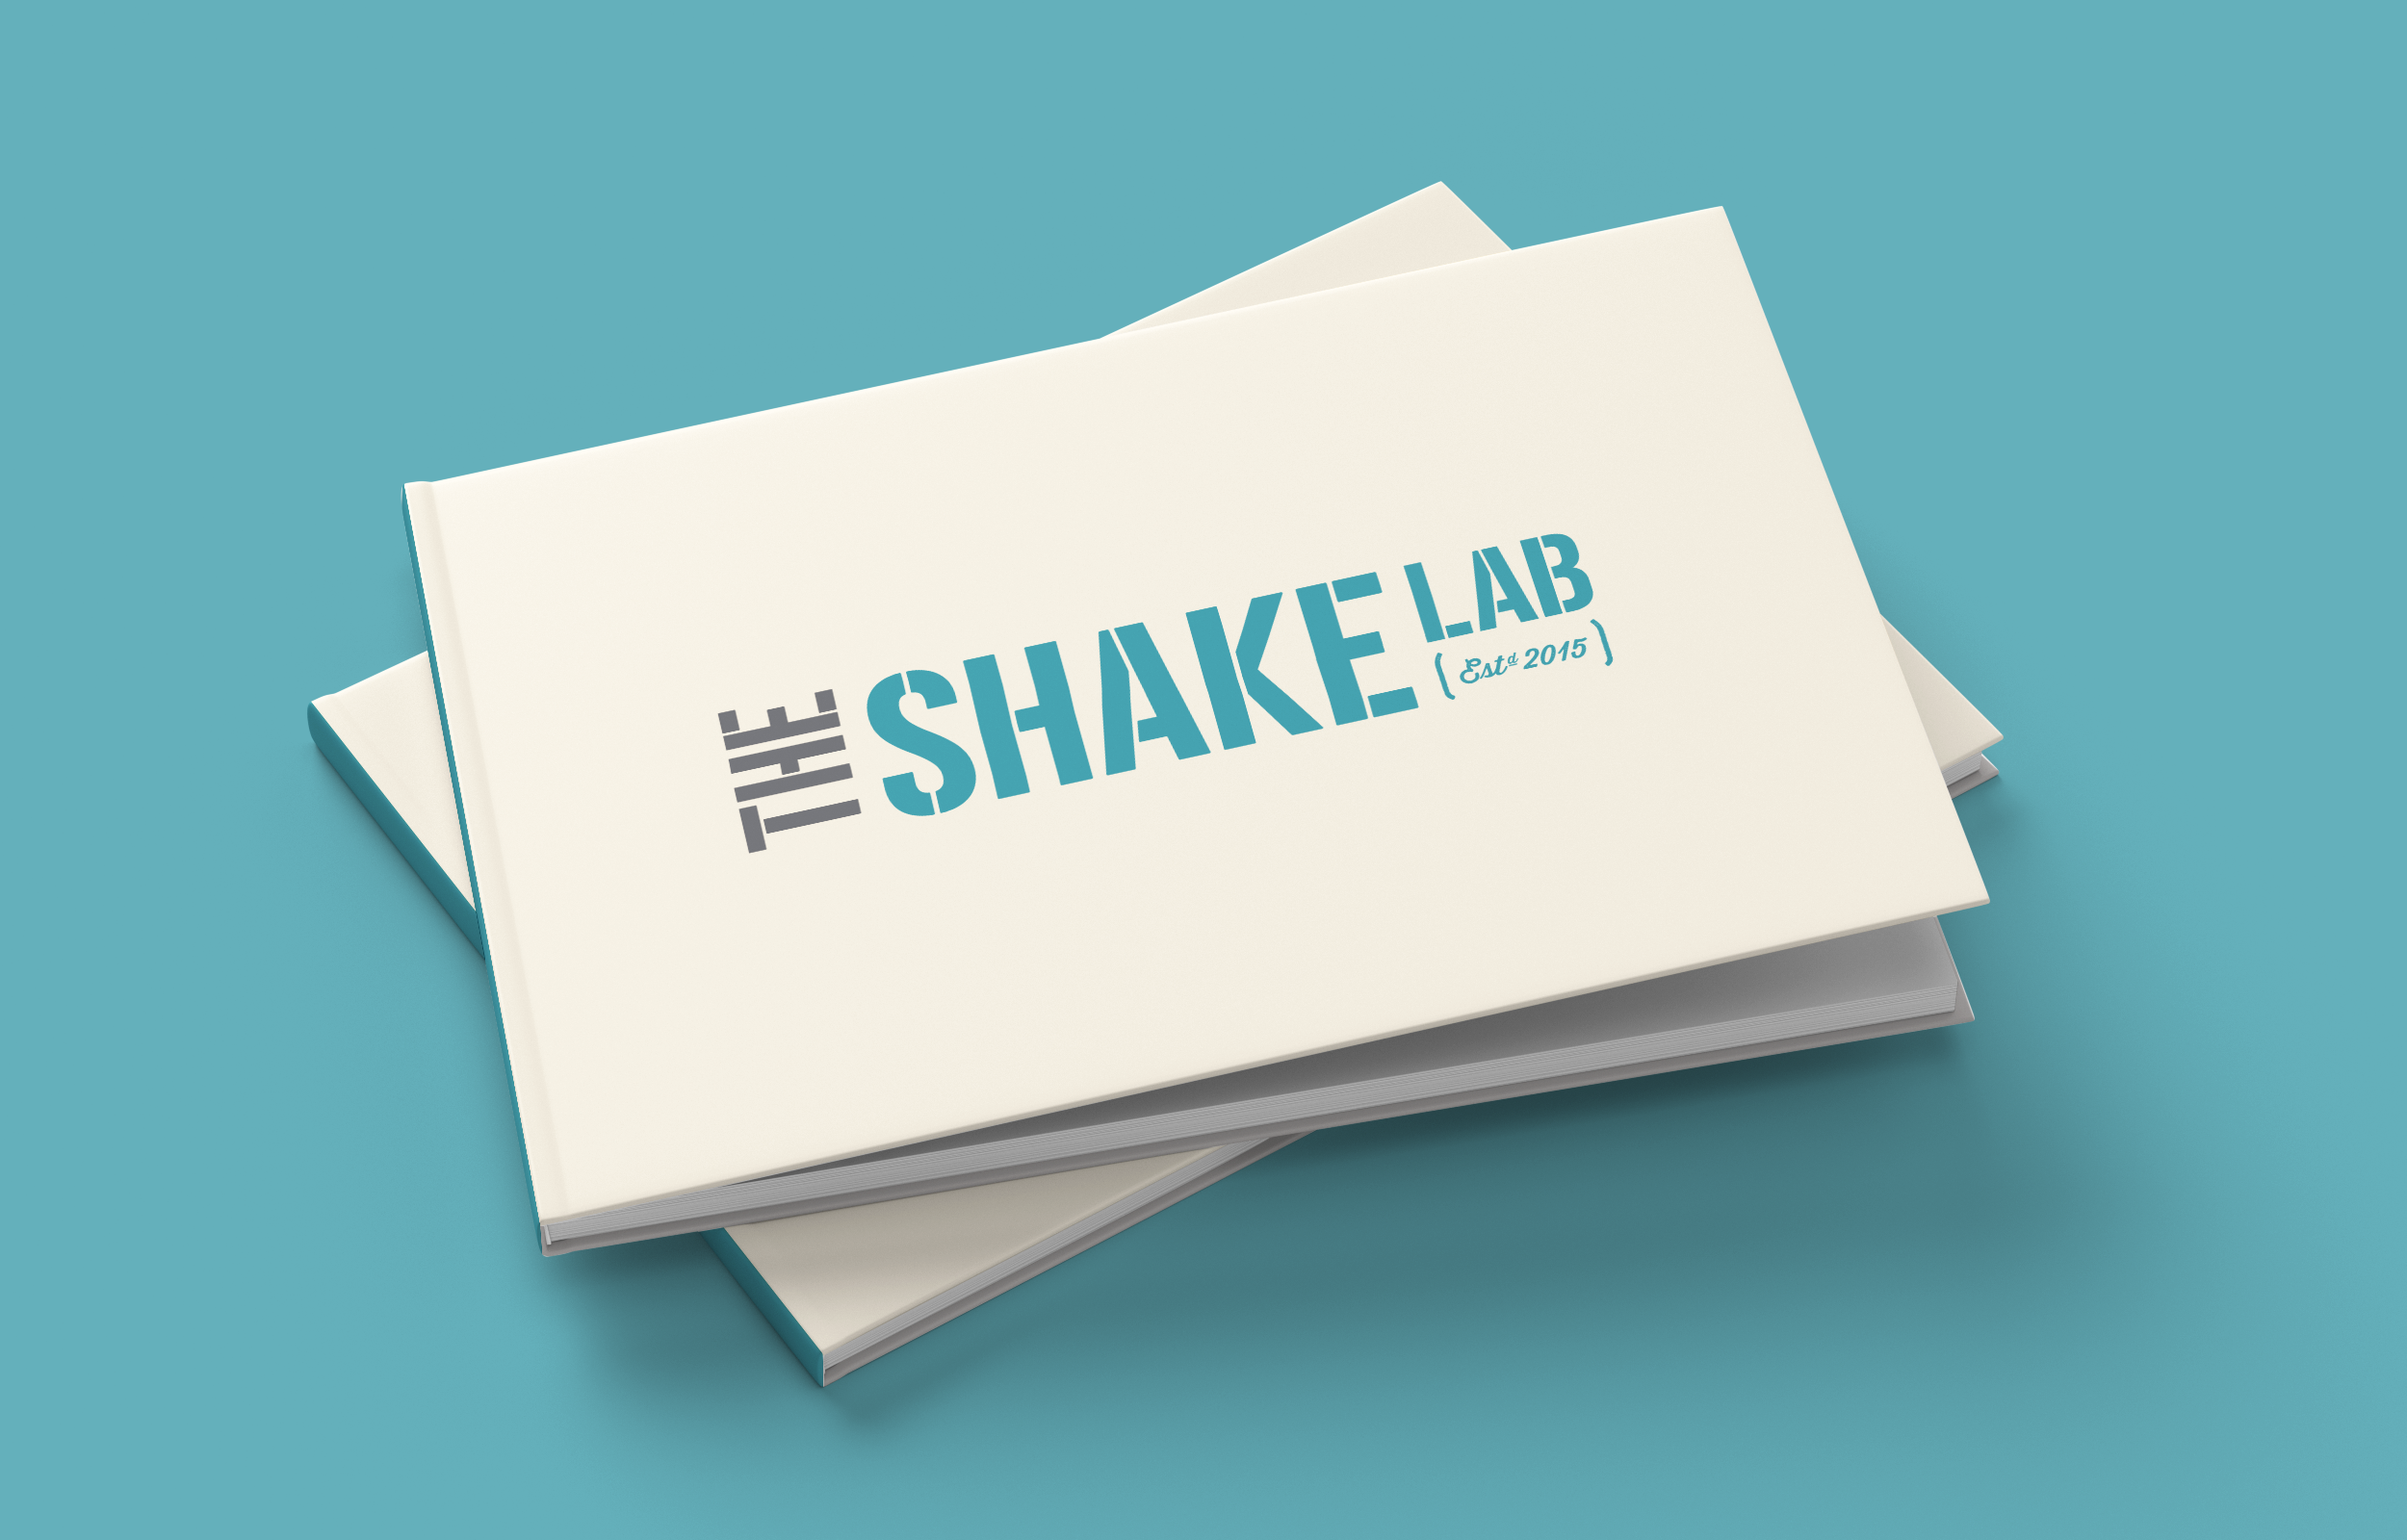 The Shake Lab brand guidelines cover